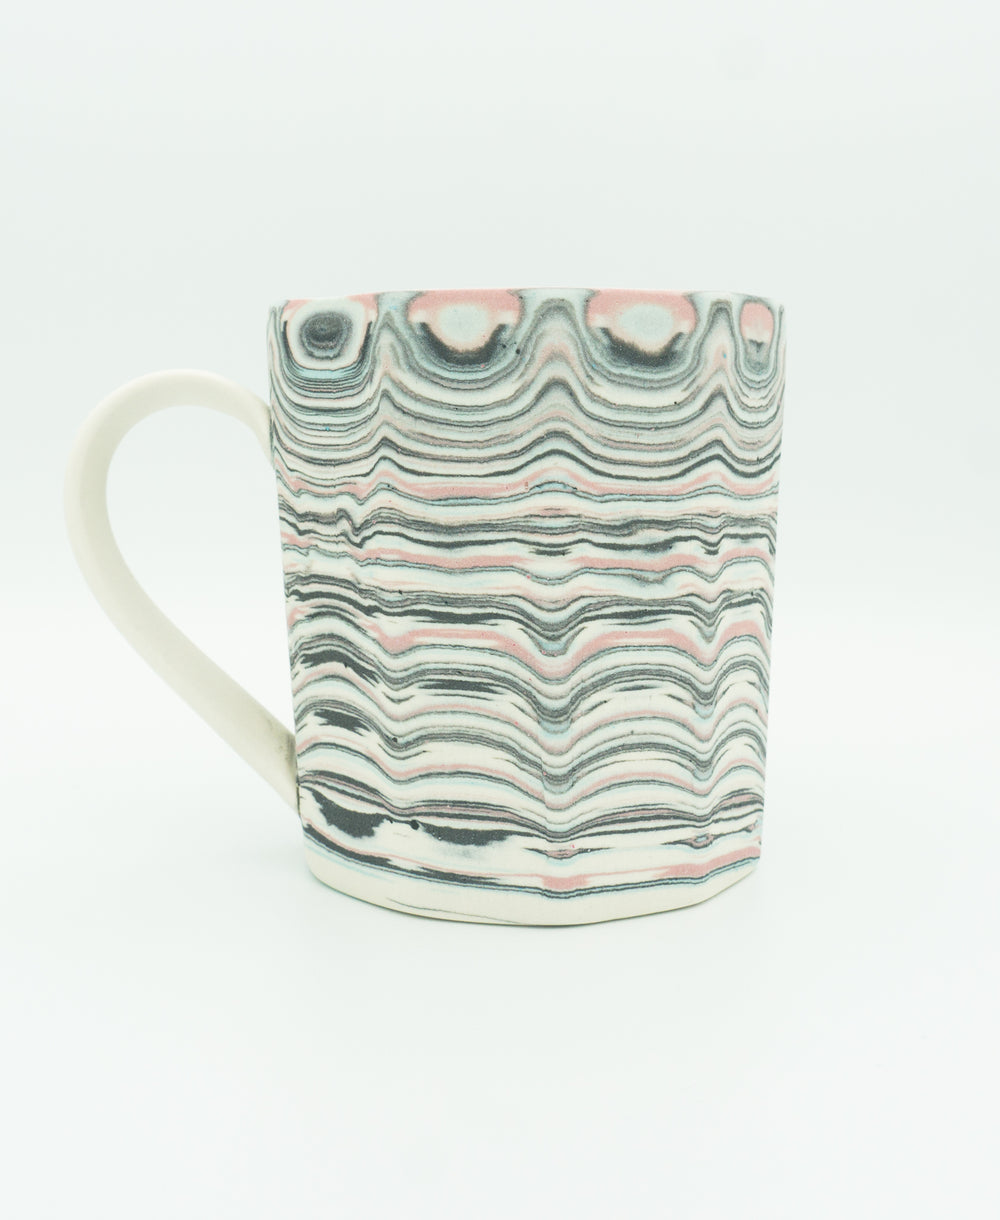 Faceted Agateware Mu w Strap Handle in Unglazed Pink, Blue, Black & White.